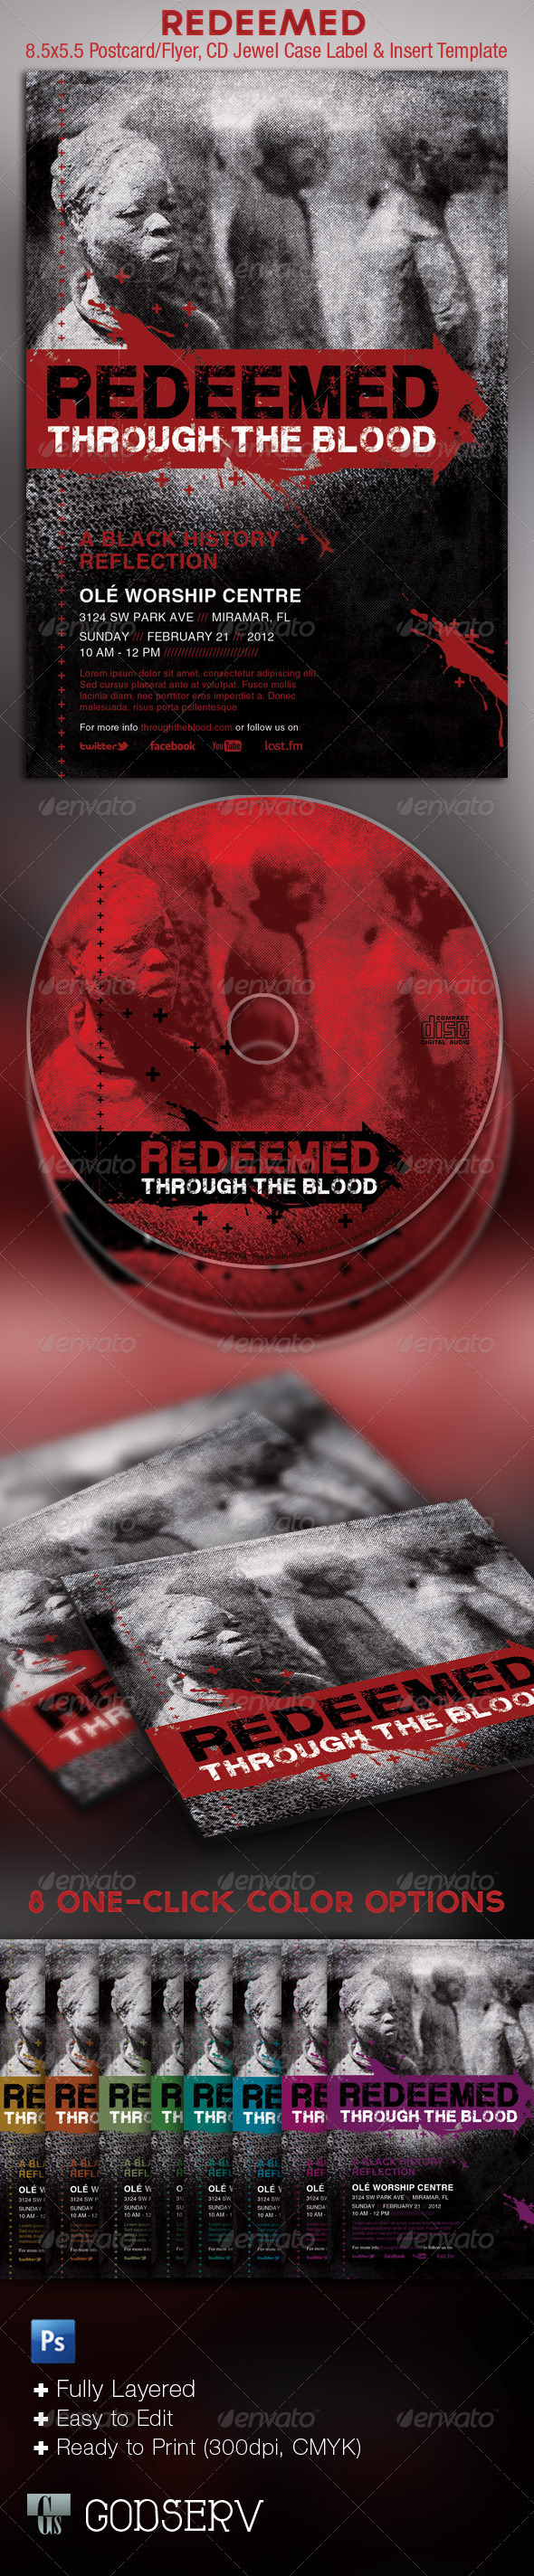 GraphicRiver Redeemed Black History Flyer and CD Template 1596518